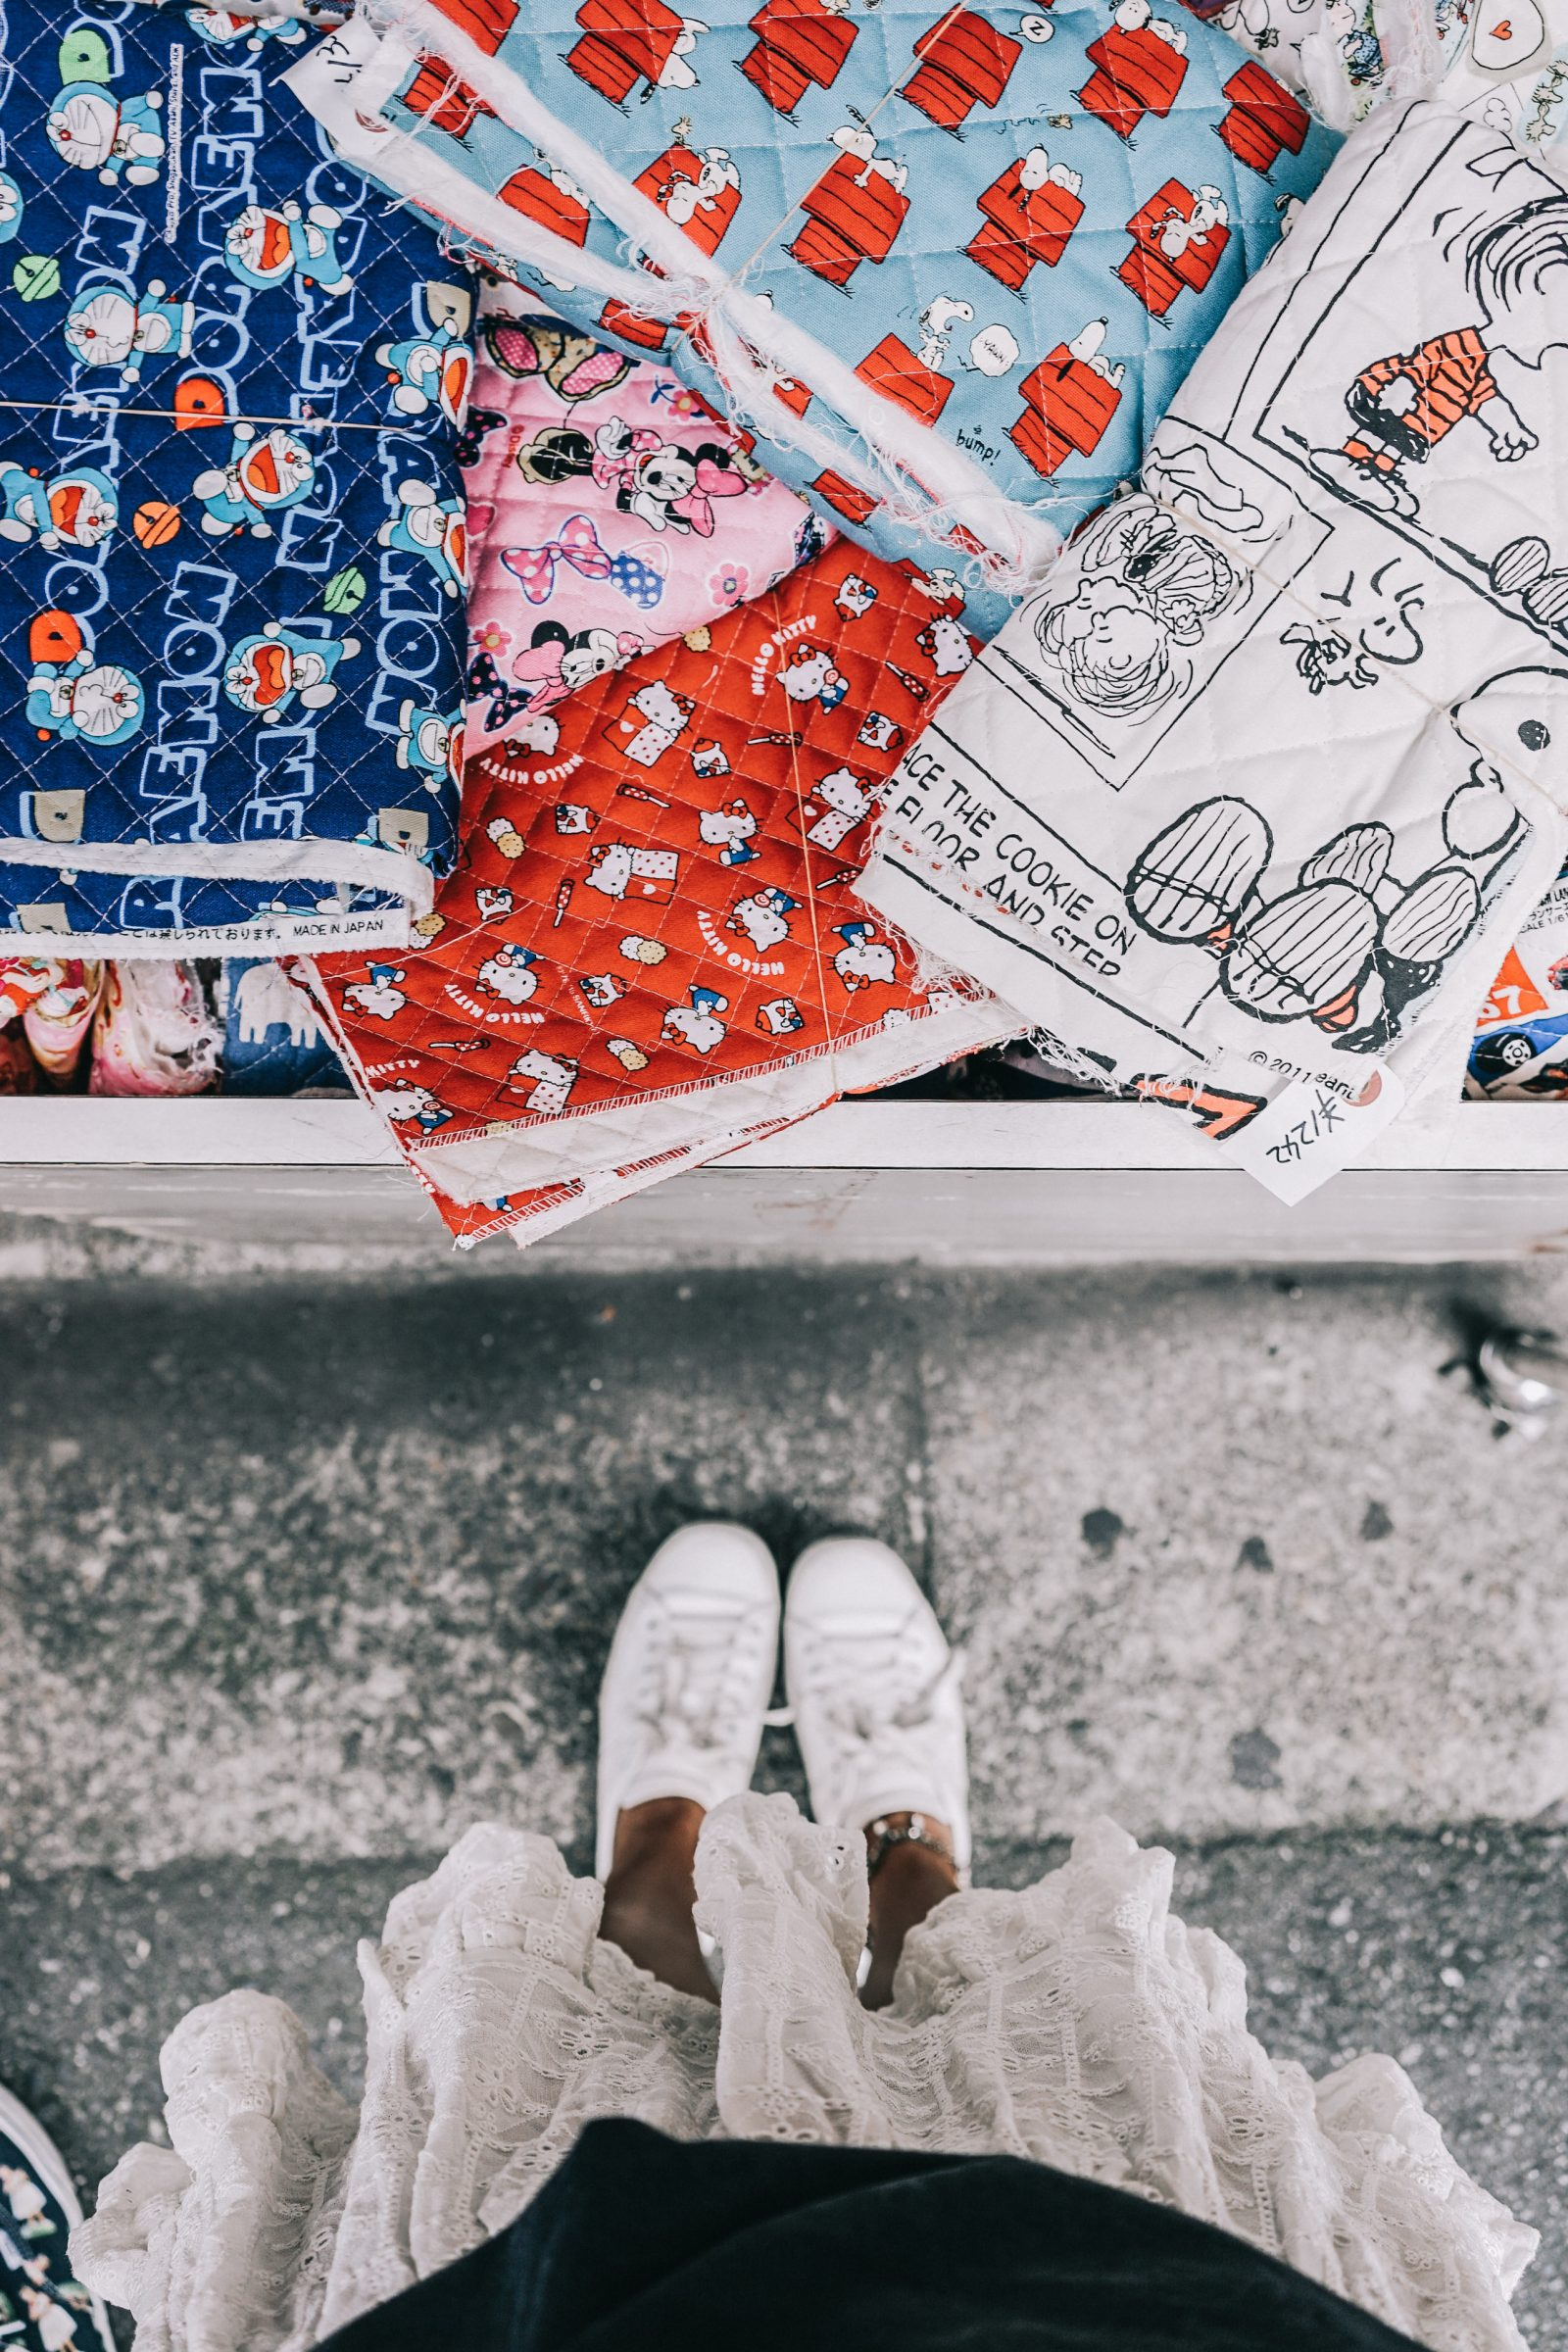 Tokyo_Travel_Guide-Outfit-Collage_Vintage-Street_Style-Top_Mettalica-Brandy_Melville-White_Skirt-Chanel_Vintage-Sneakers-33